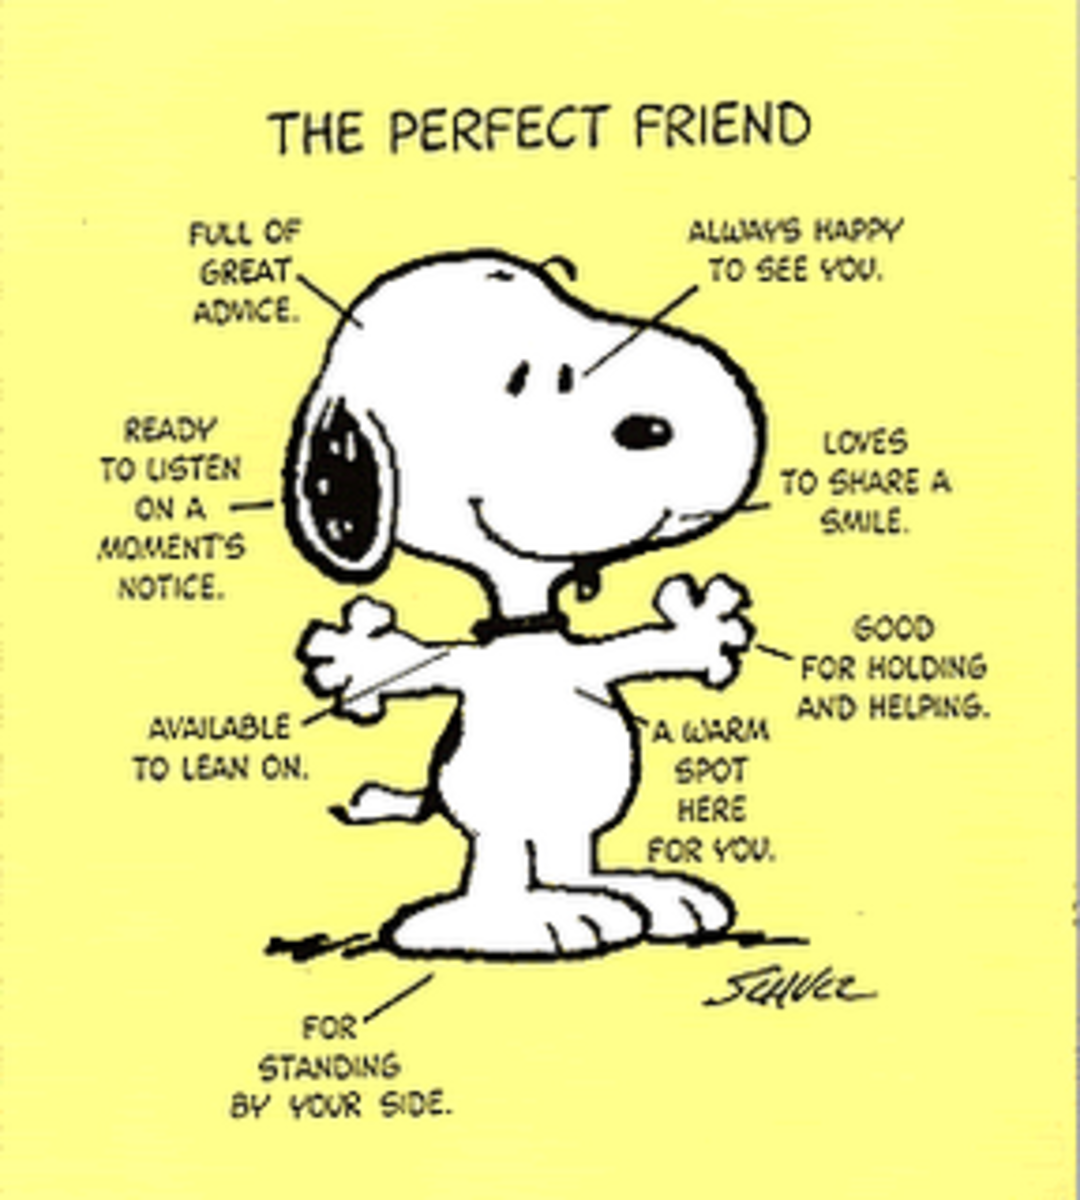 Snoopy - From 'Peanuts' by Charles M. Schulz. United Feature Syndicate.